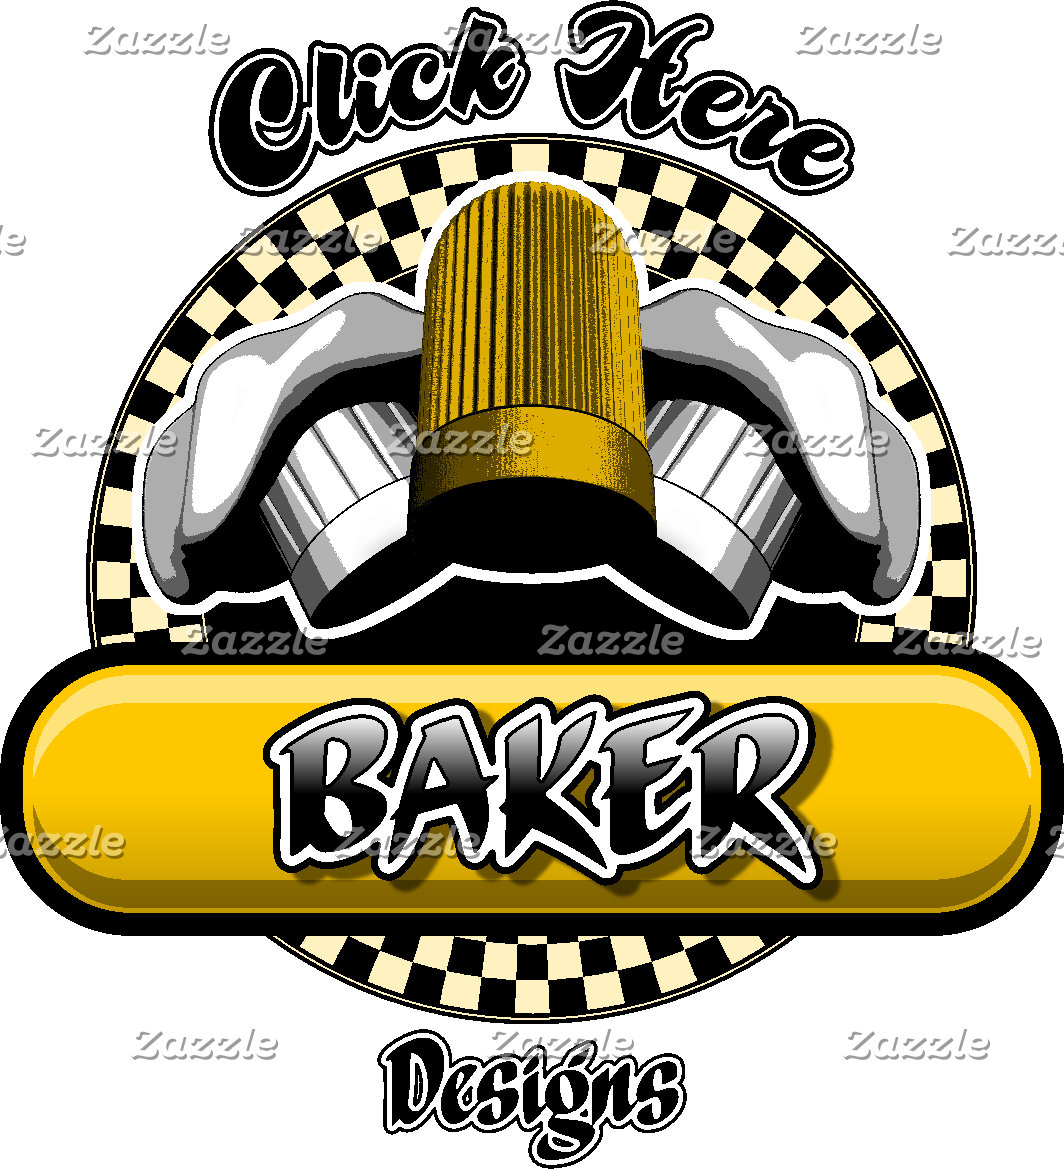 6. Bakers and Baking